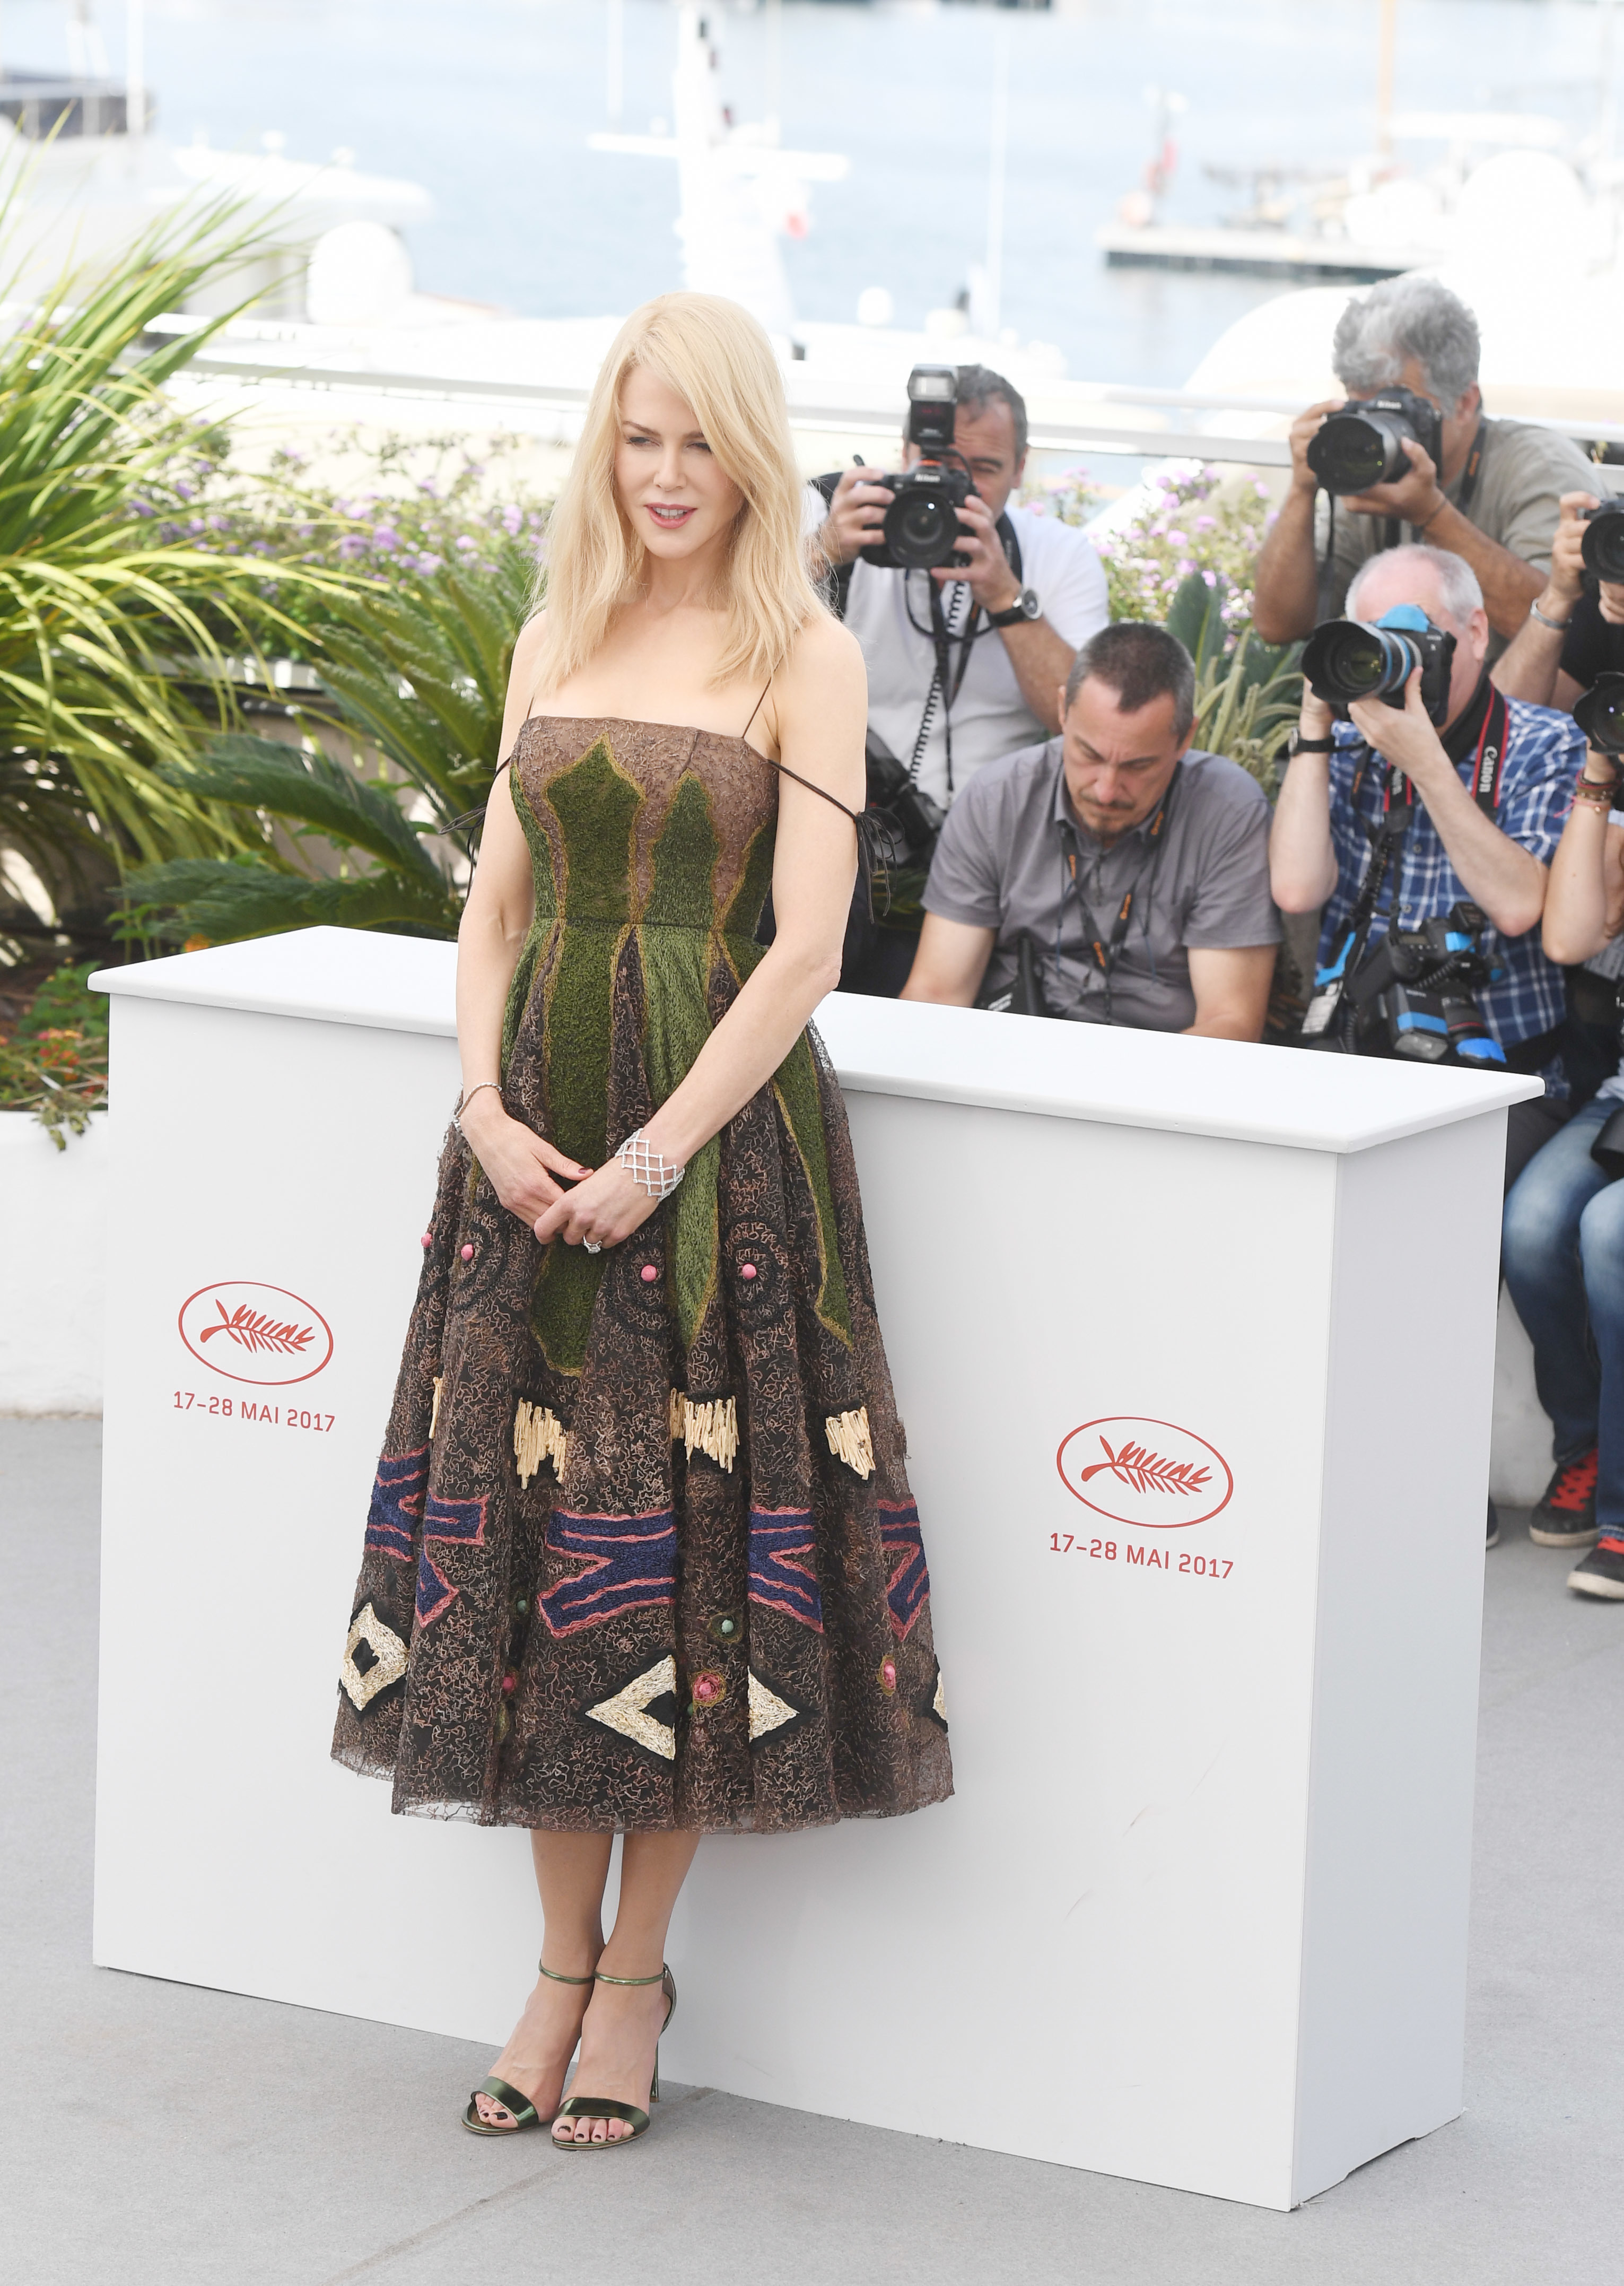 Nicole Kidman attending the photocall for 'The Killing of a Sacred Deer' during the 70th annual Cannes Film Festival at Palais des Festivals in Cannes, France. (WENN.com)